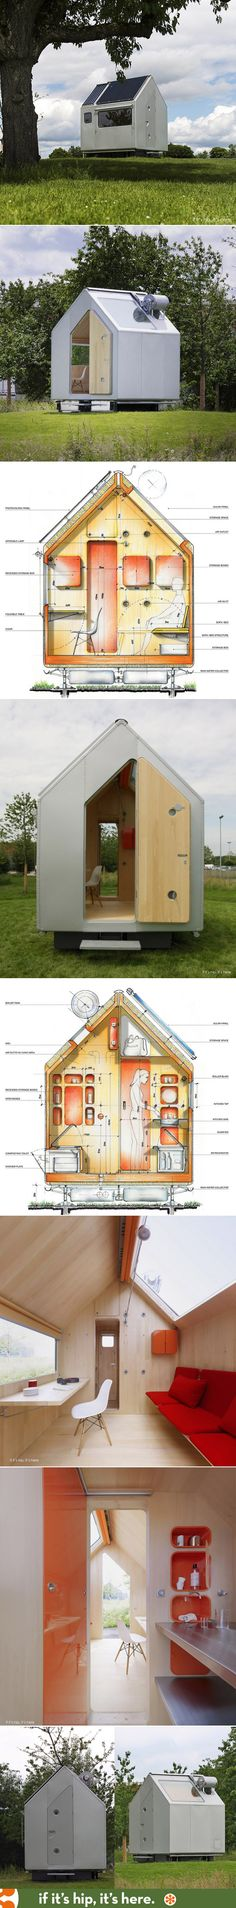 This tiny House for Vitra by Renzo Piano has solar power, photovoltaic panels, a composting toilet, bed, kitchen and more in under 10' x 9',